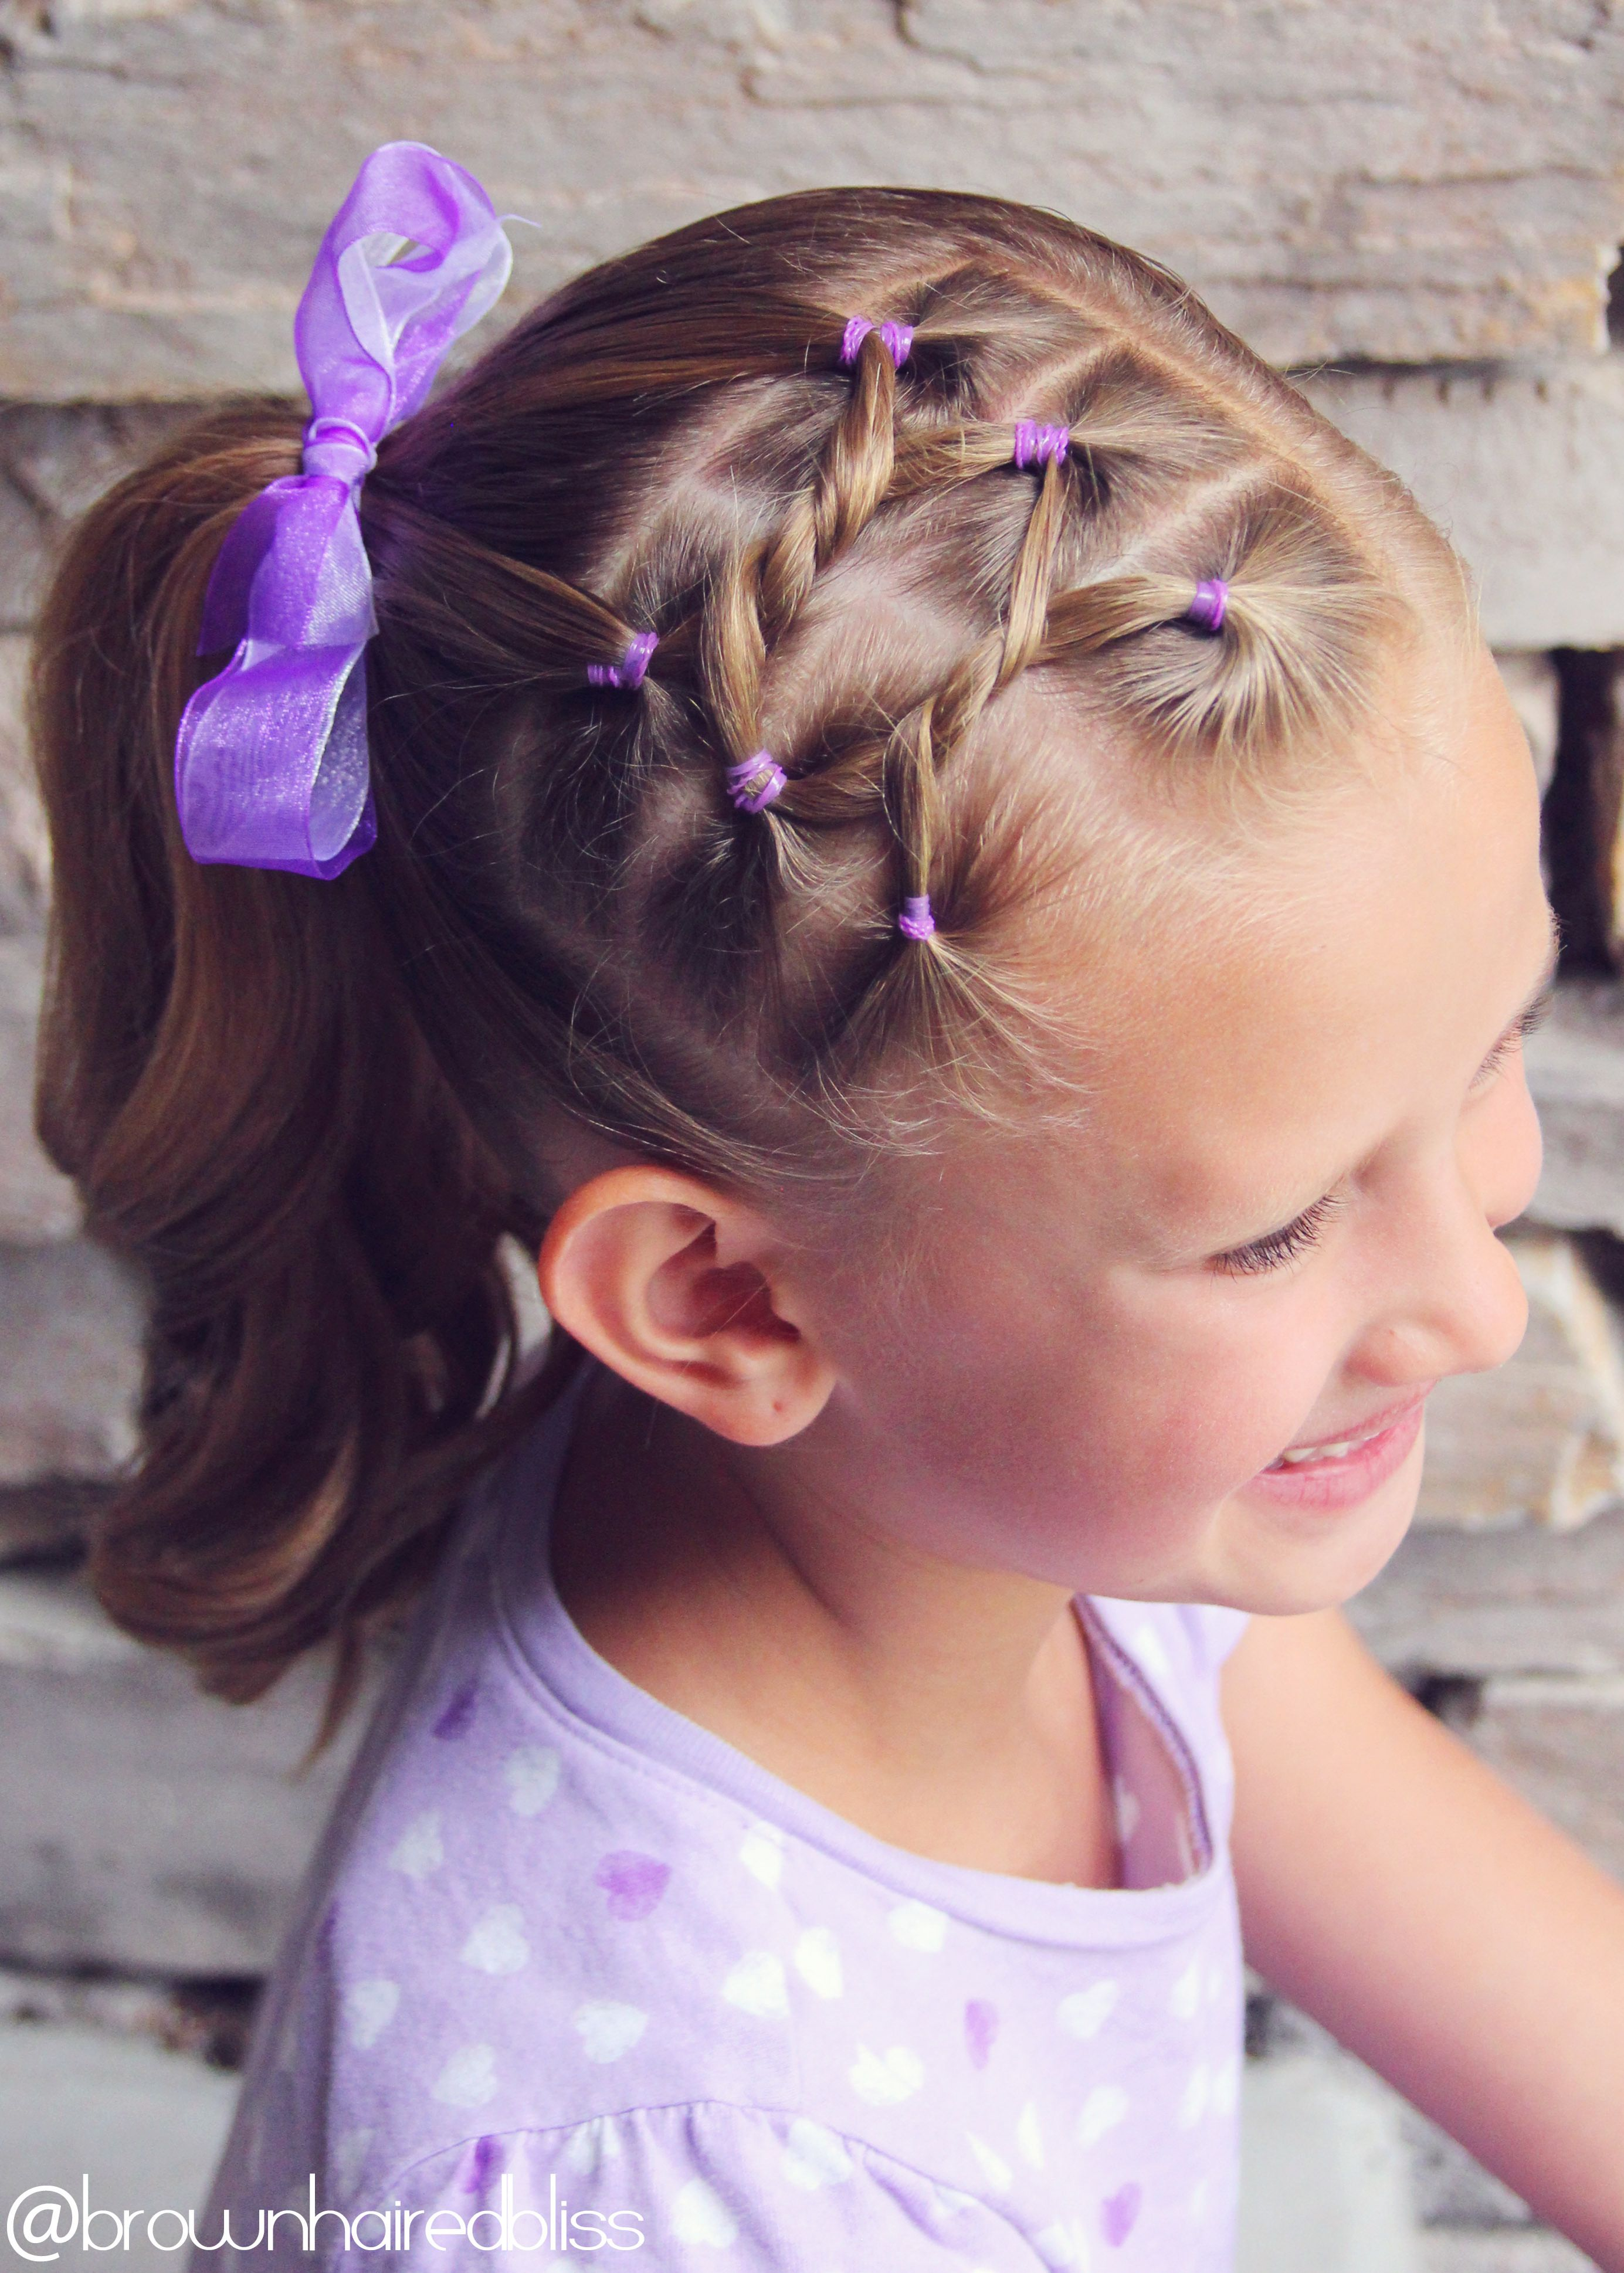 hair dous for little girls pinterest hair style girl